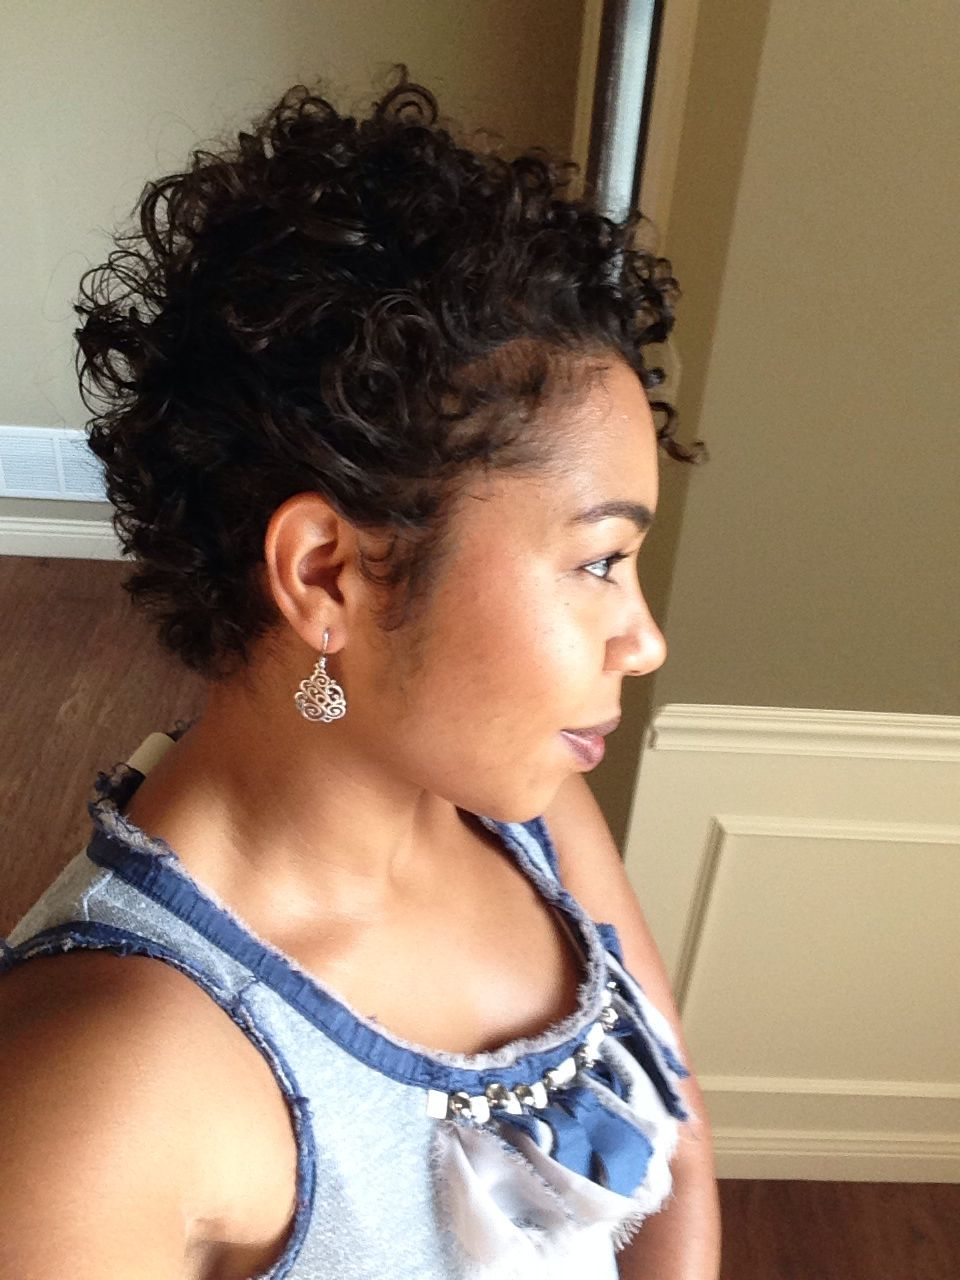 new hair! short curly hair can work for a round face! type